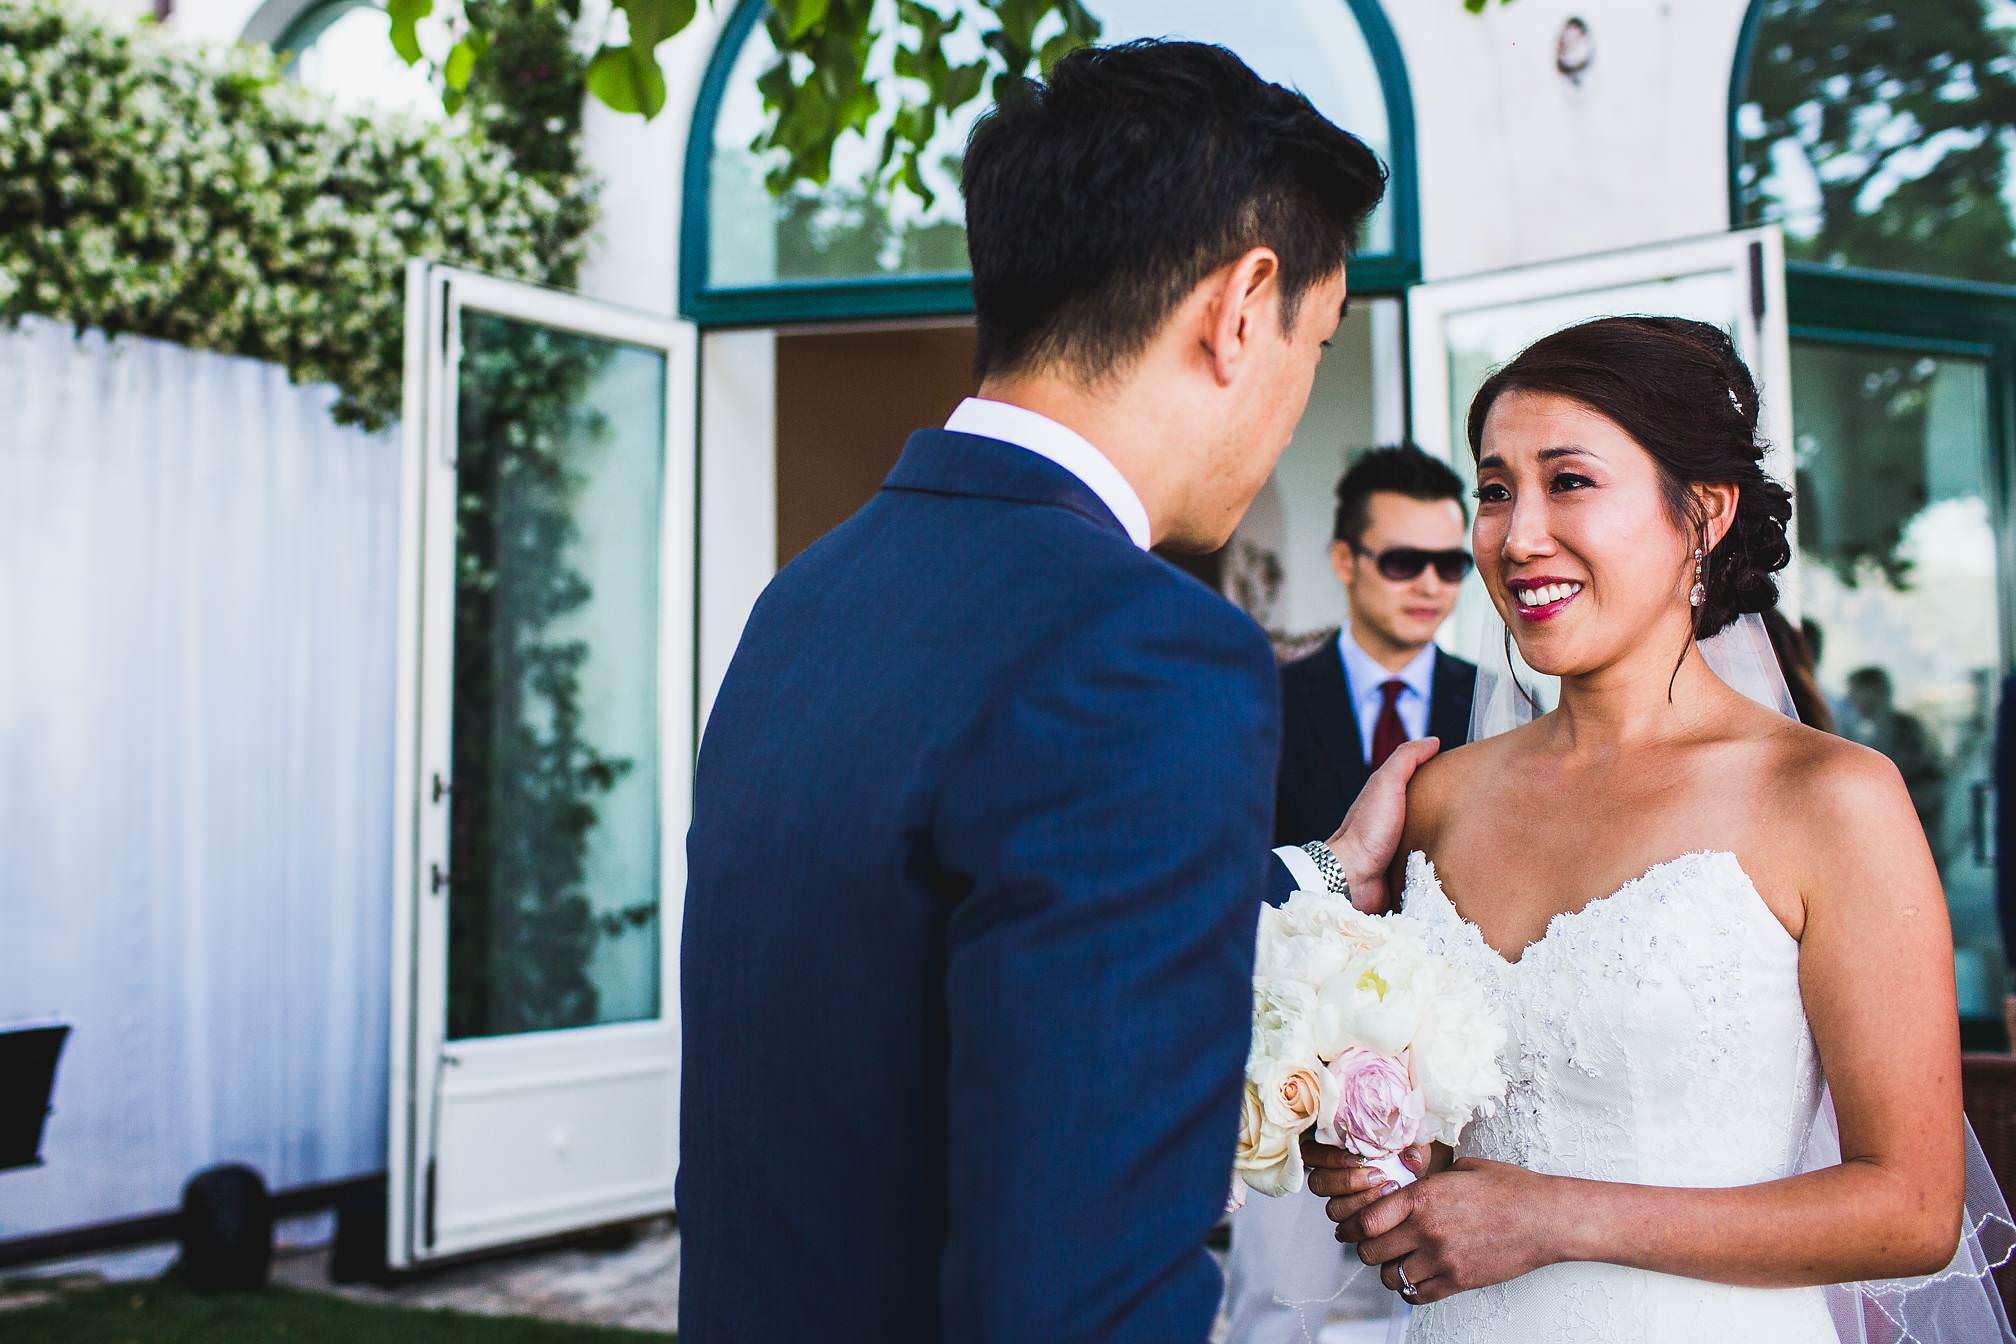 Chinese Wedding Ceremony in Italy